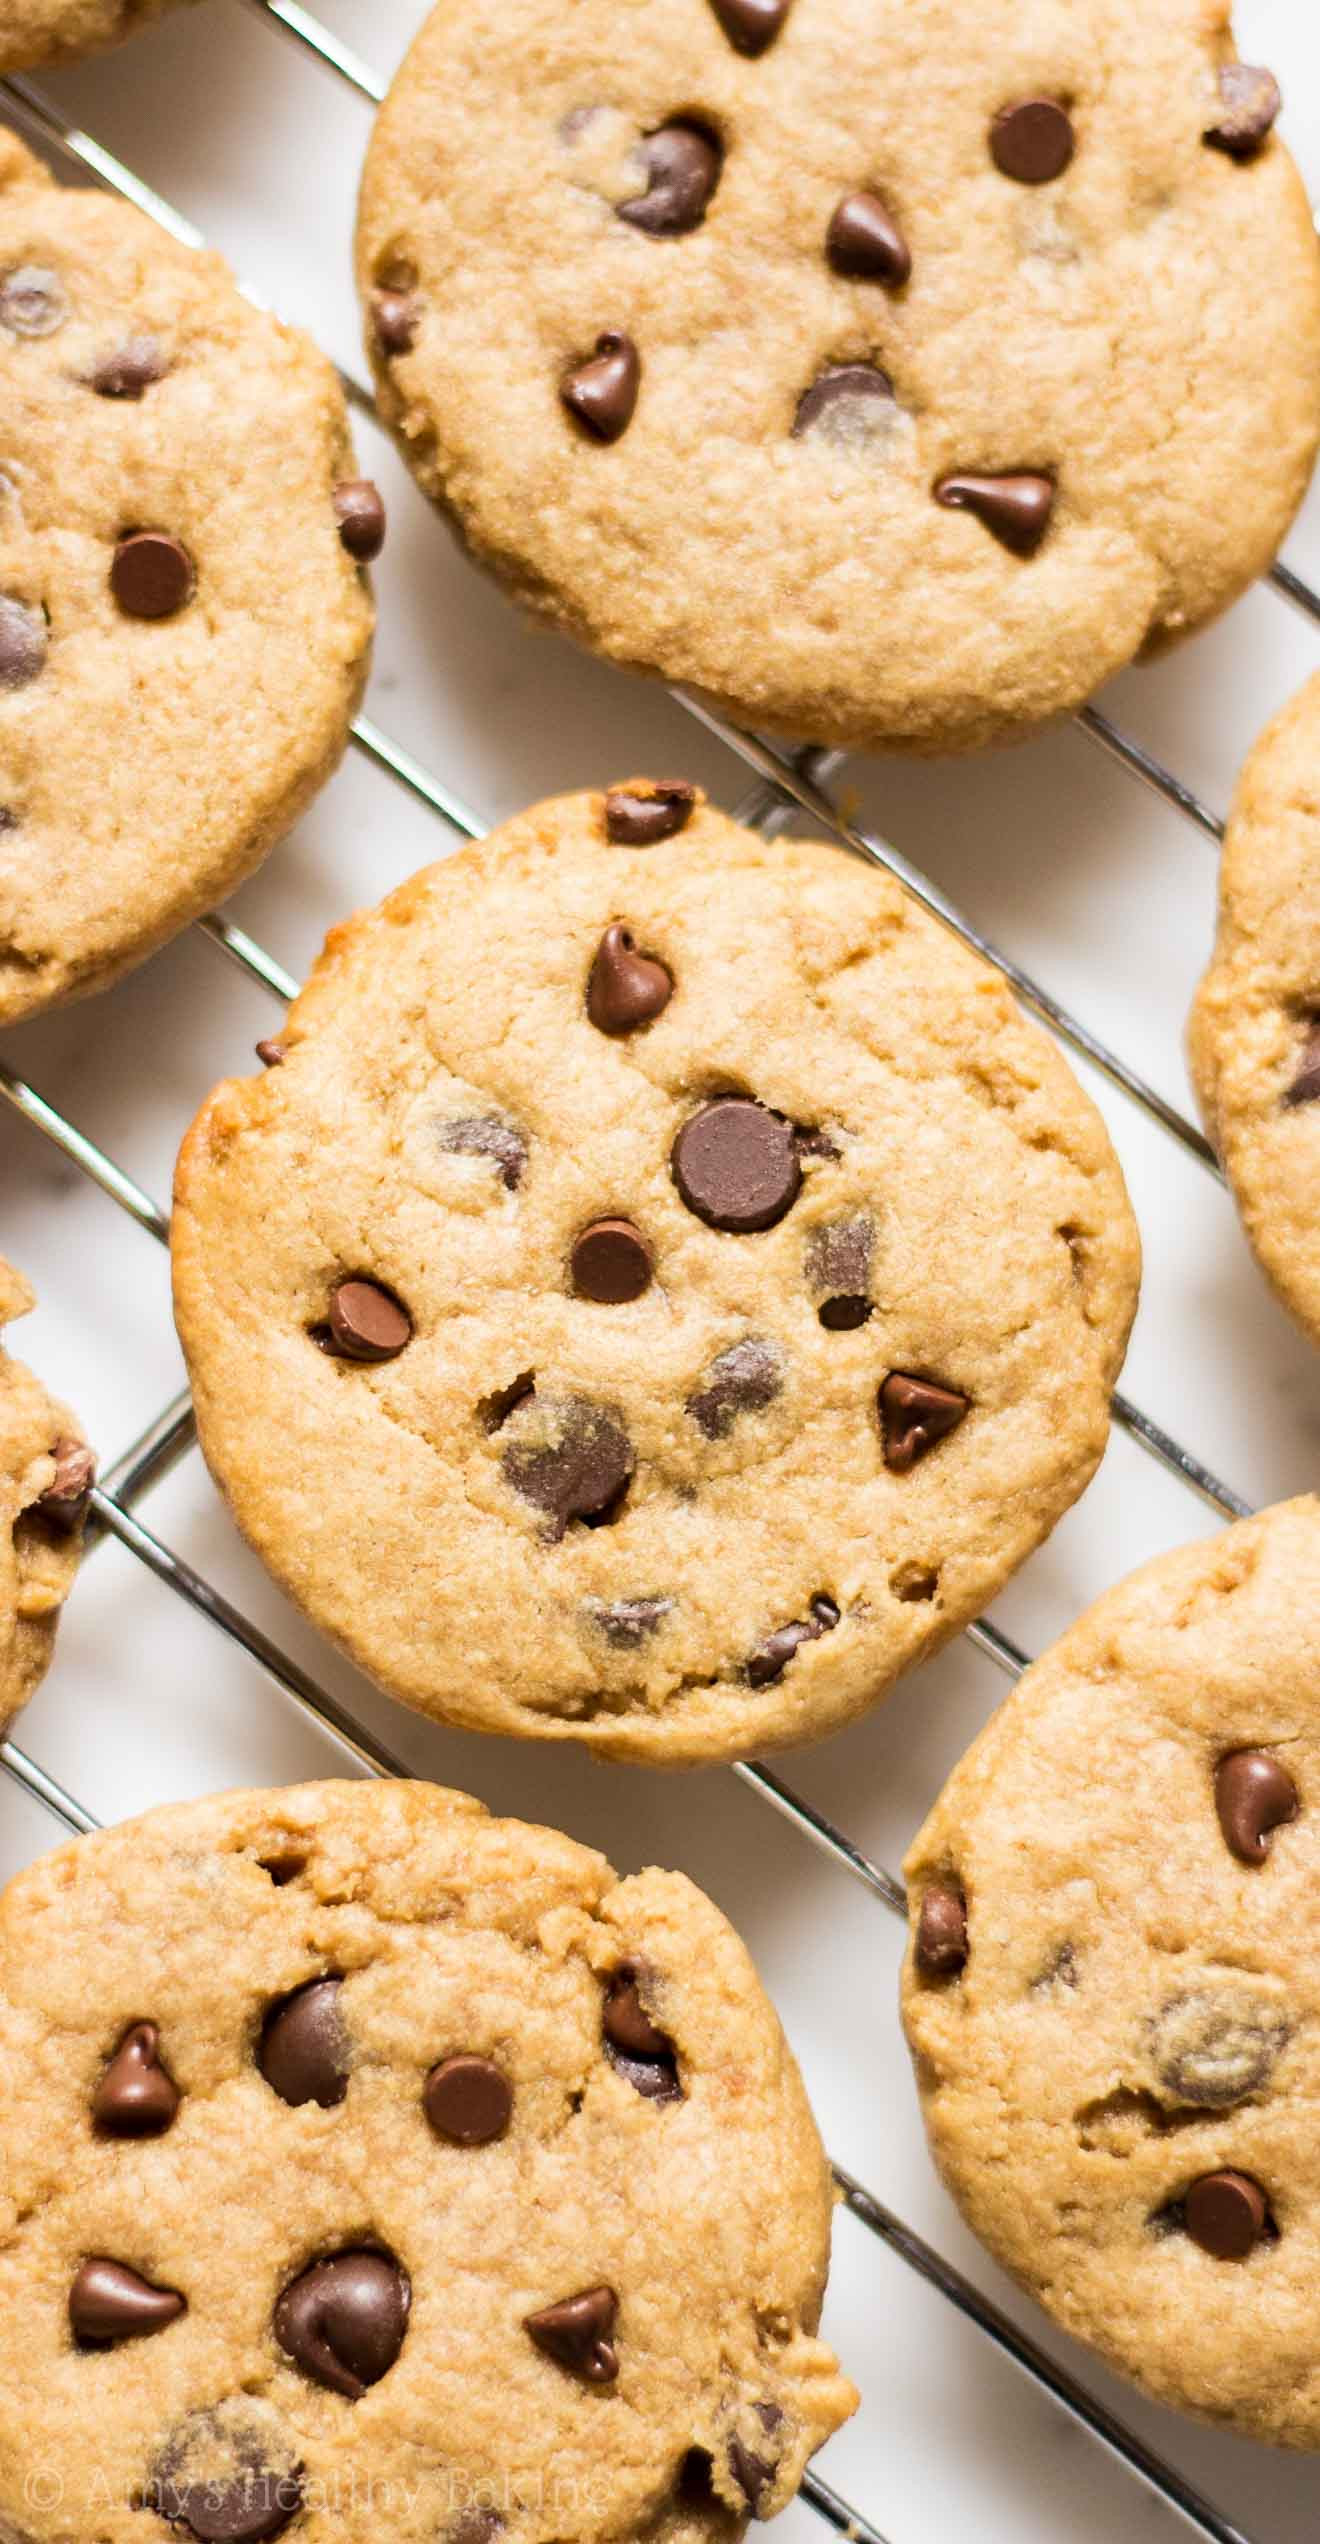 Peanut Butter Cookies With Chocolate Chips  Chocolate Chip Peanut Butter Banana Cookies